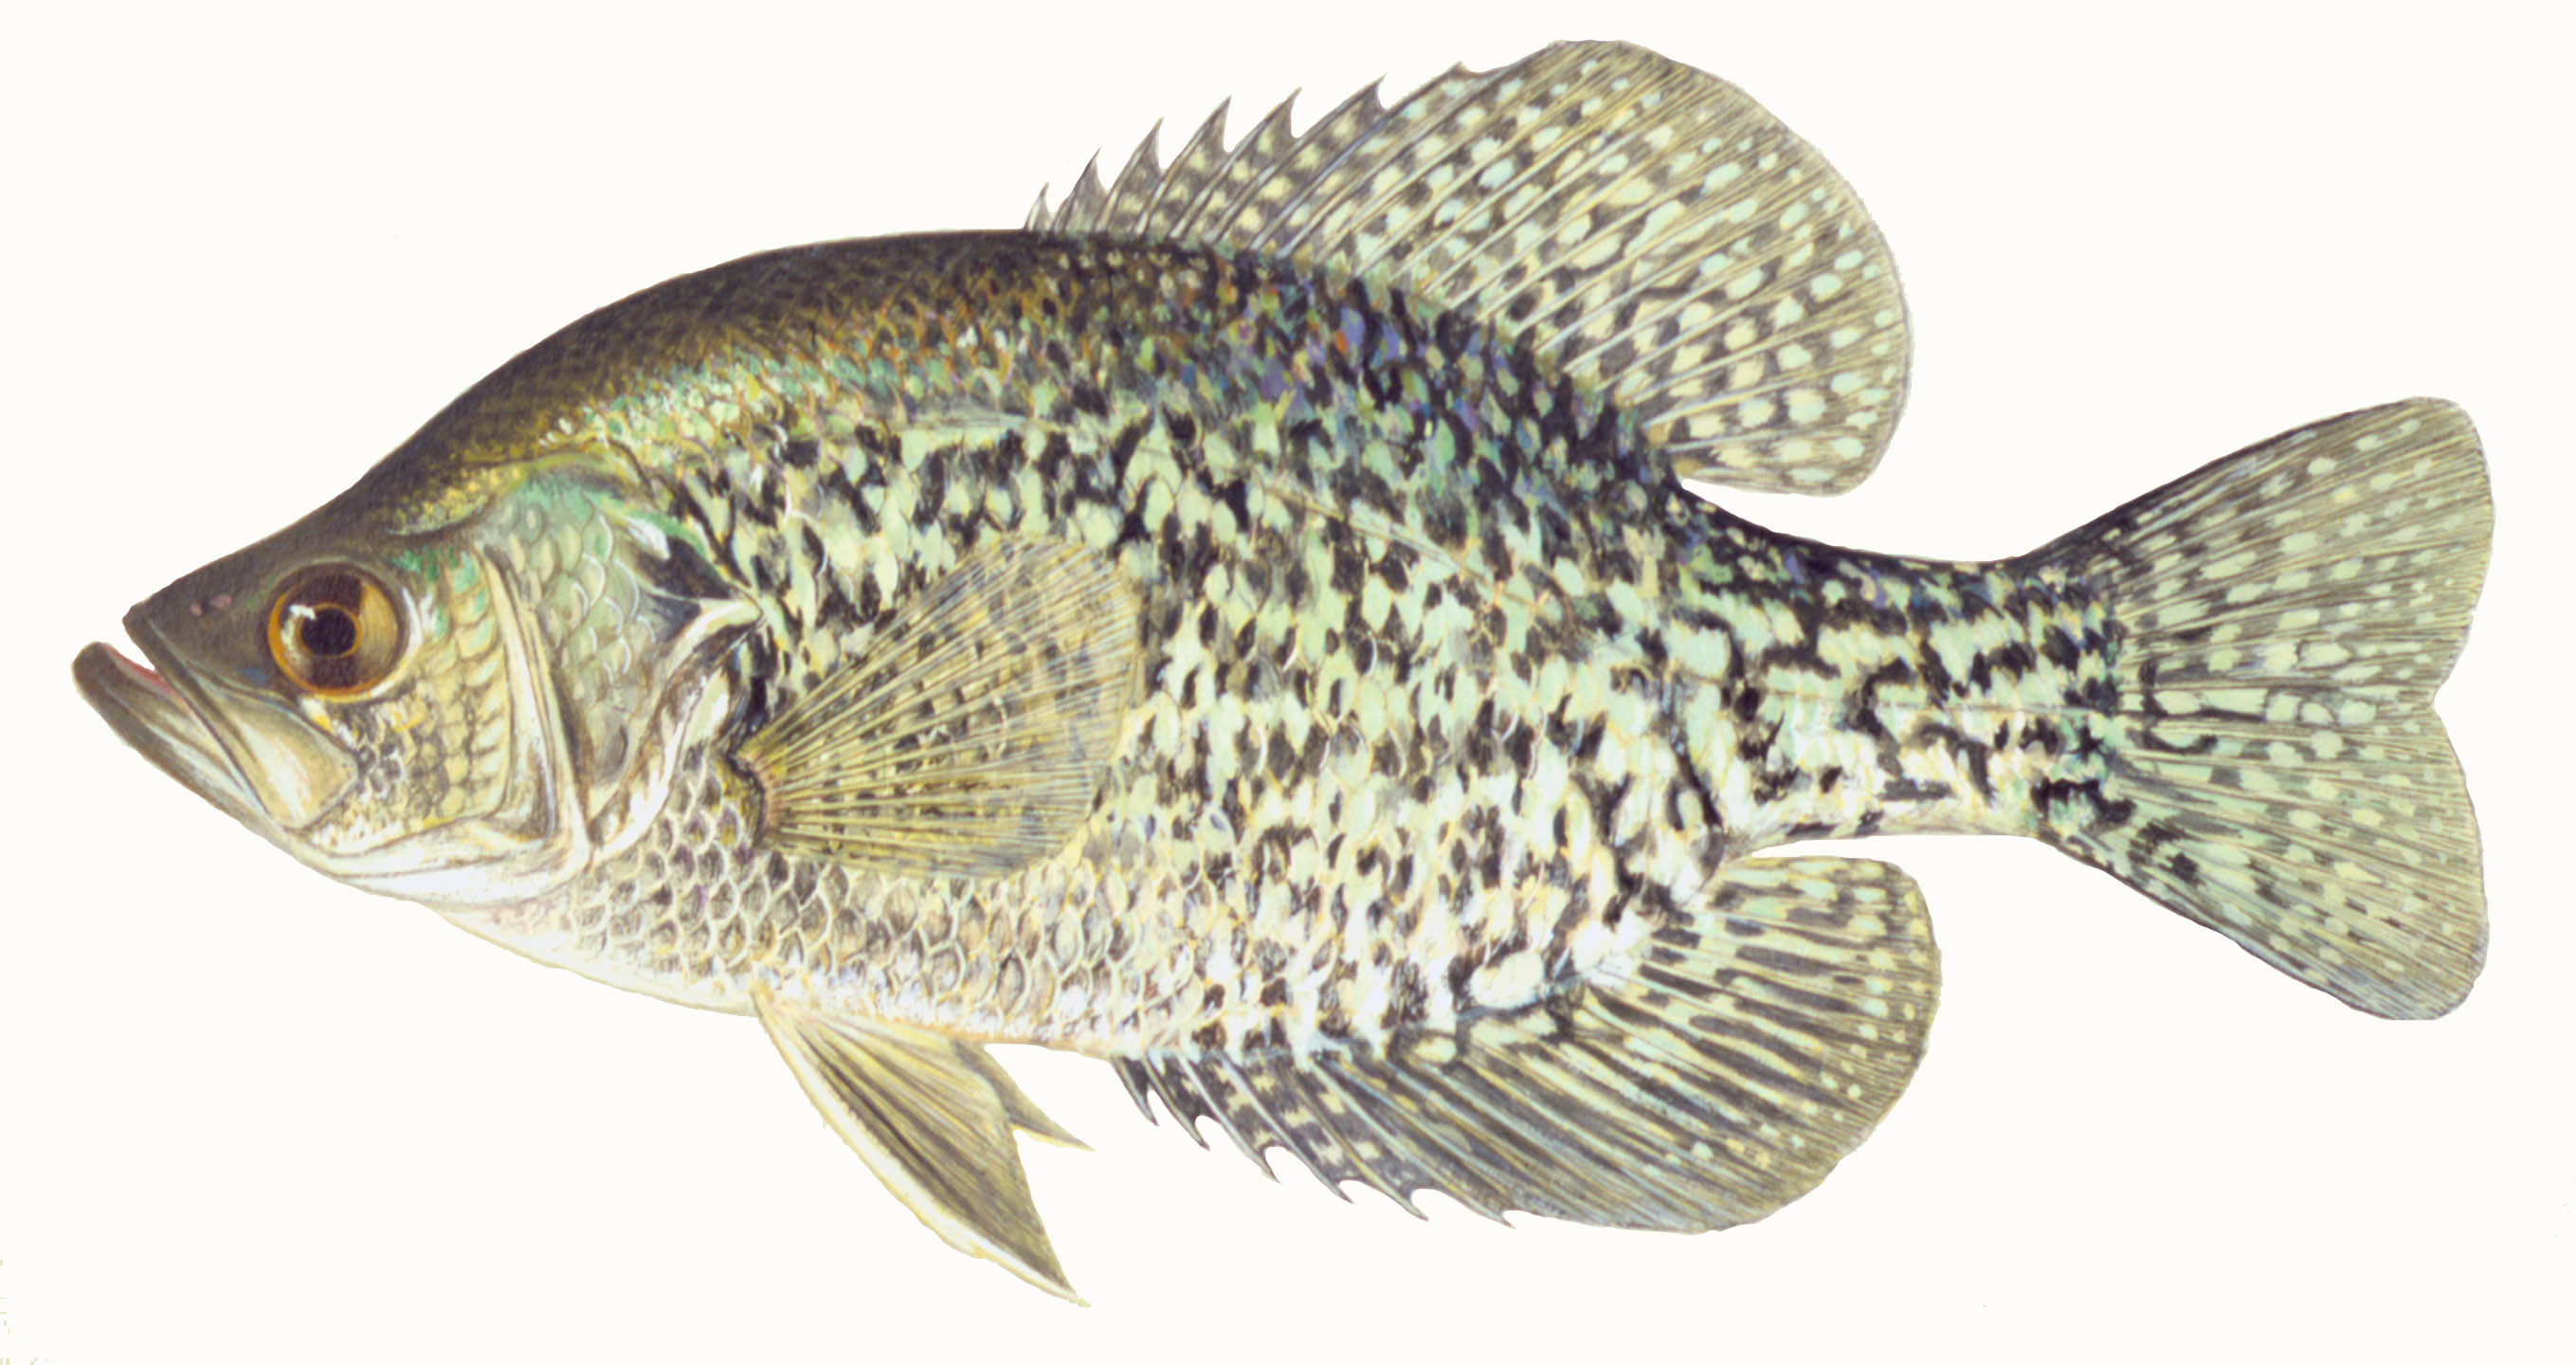 Black Crappie, illustration by Maynard Reece, from Iowa Fish and Fishing.